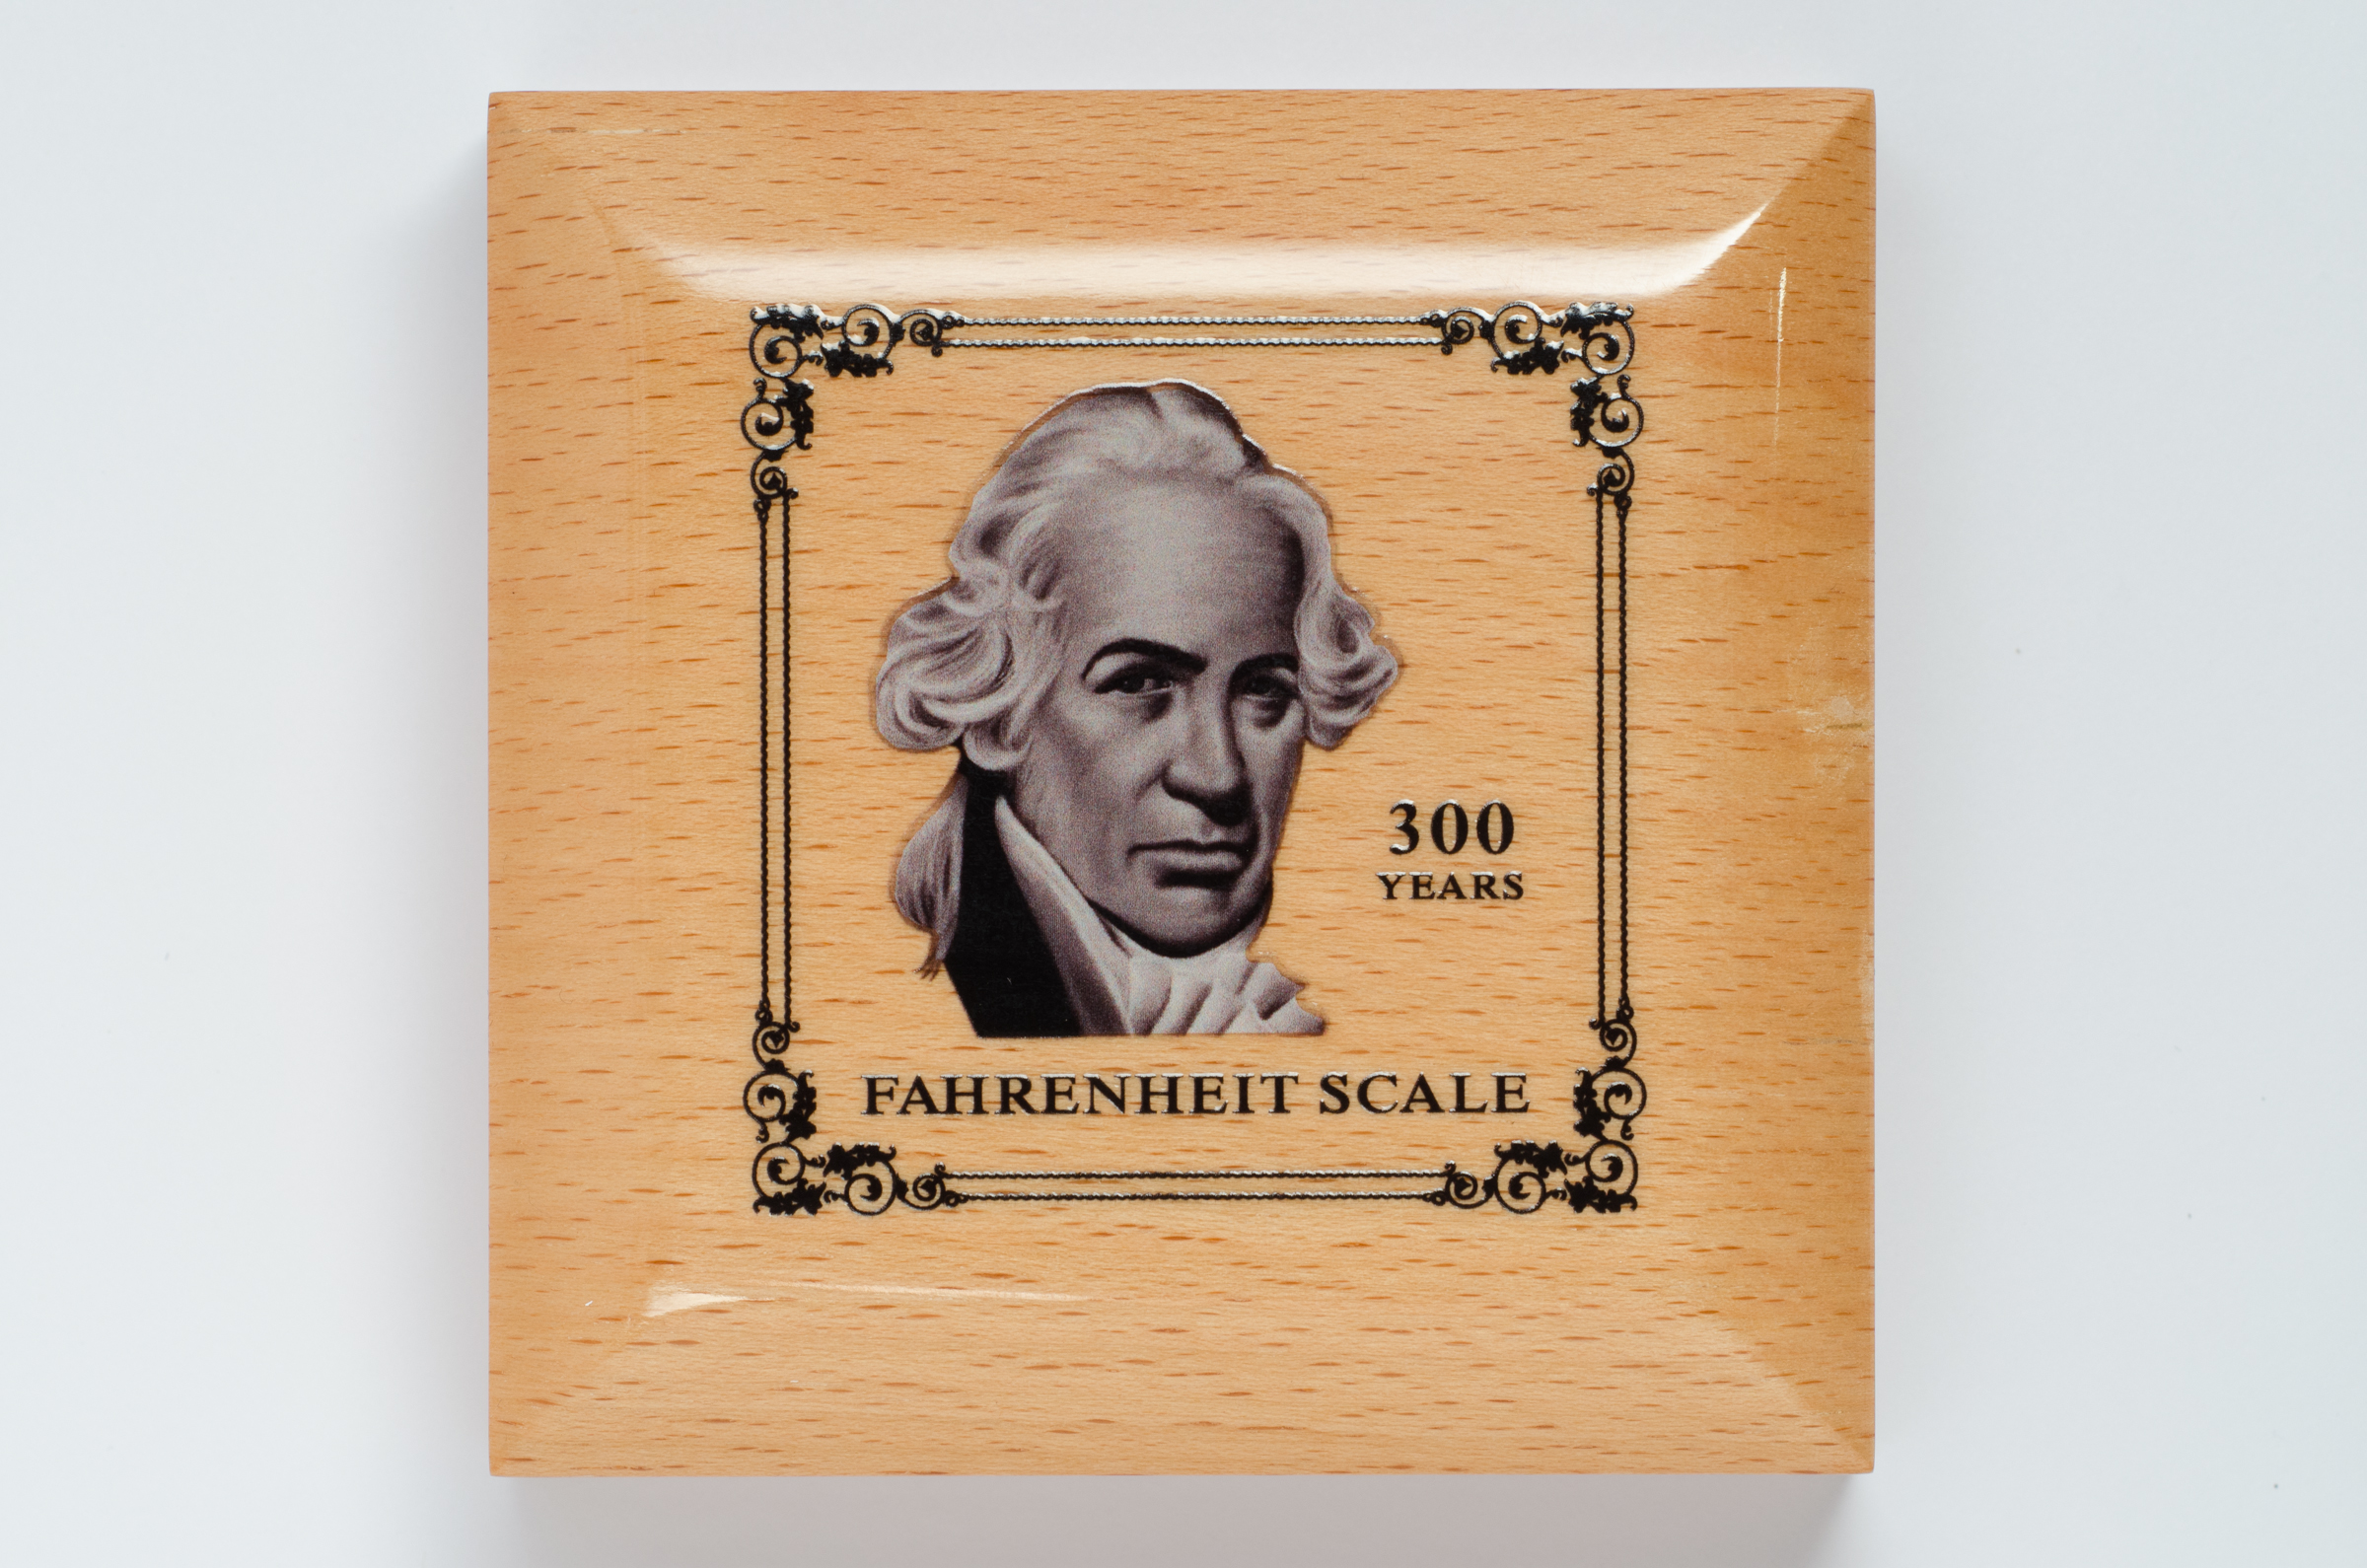 a biography of gabriel fahrenheit Anders celsius was a swedish astronomer who built the uppsala observatory and invented the  developed by daniel gabriel fahrenheit,  anders celsius biography.